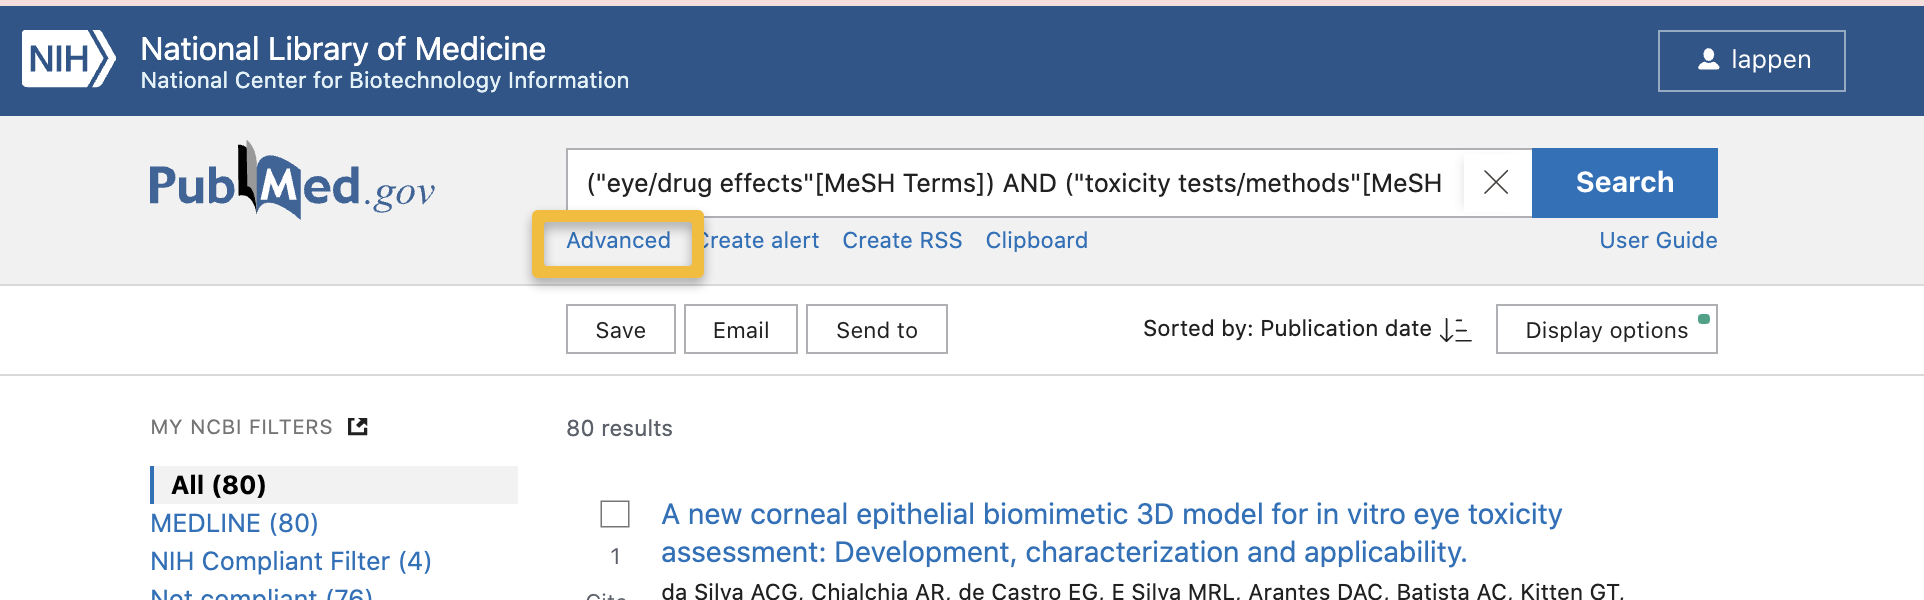 "Screencapture of PubMed results page highlighting ""Advanced"" link under main search bar"